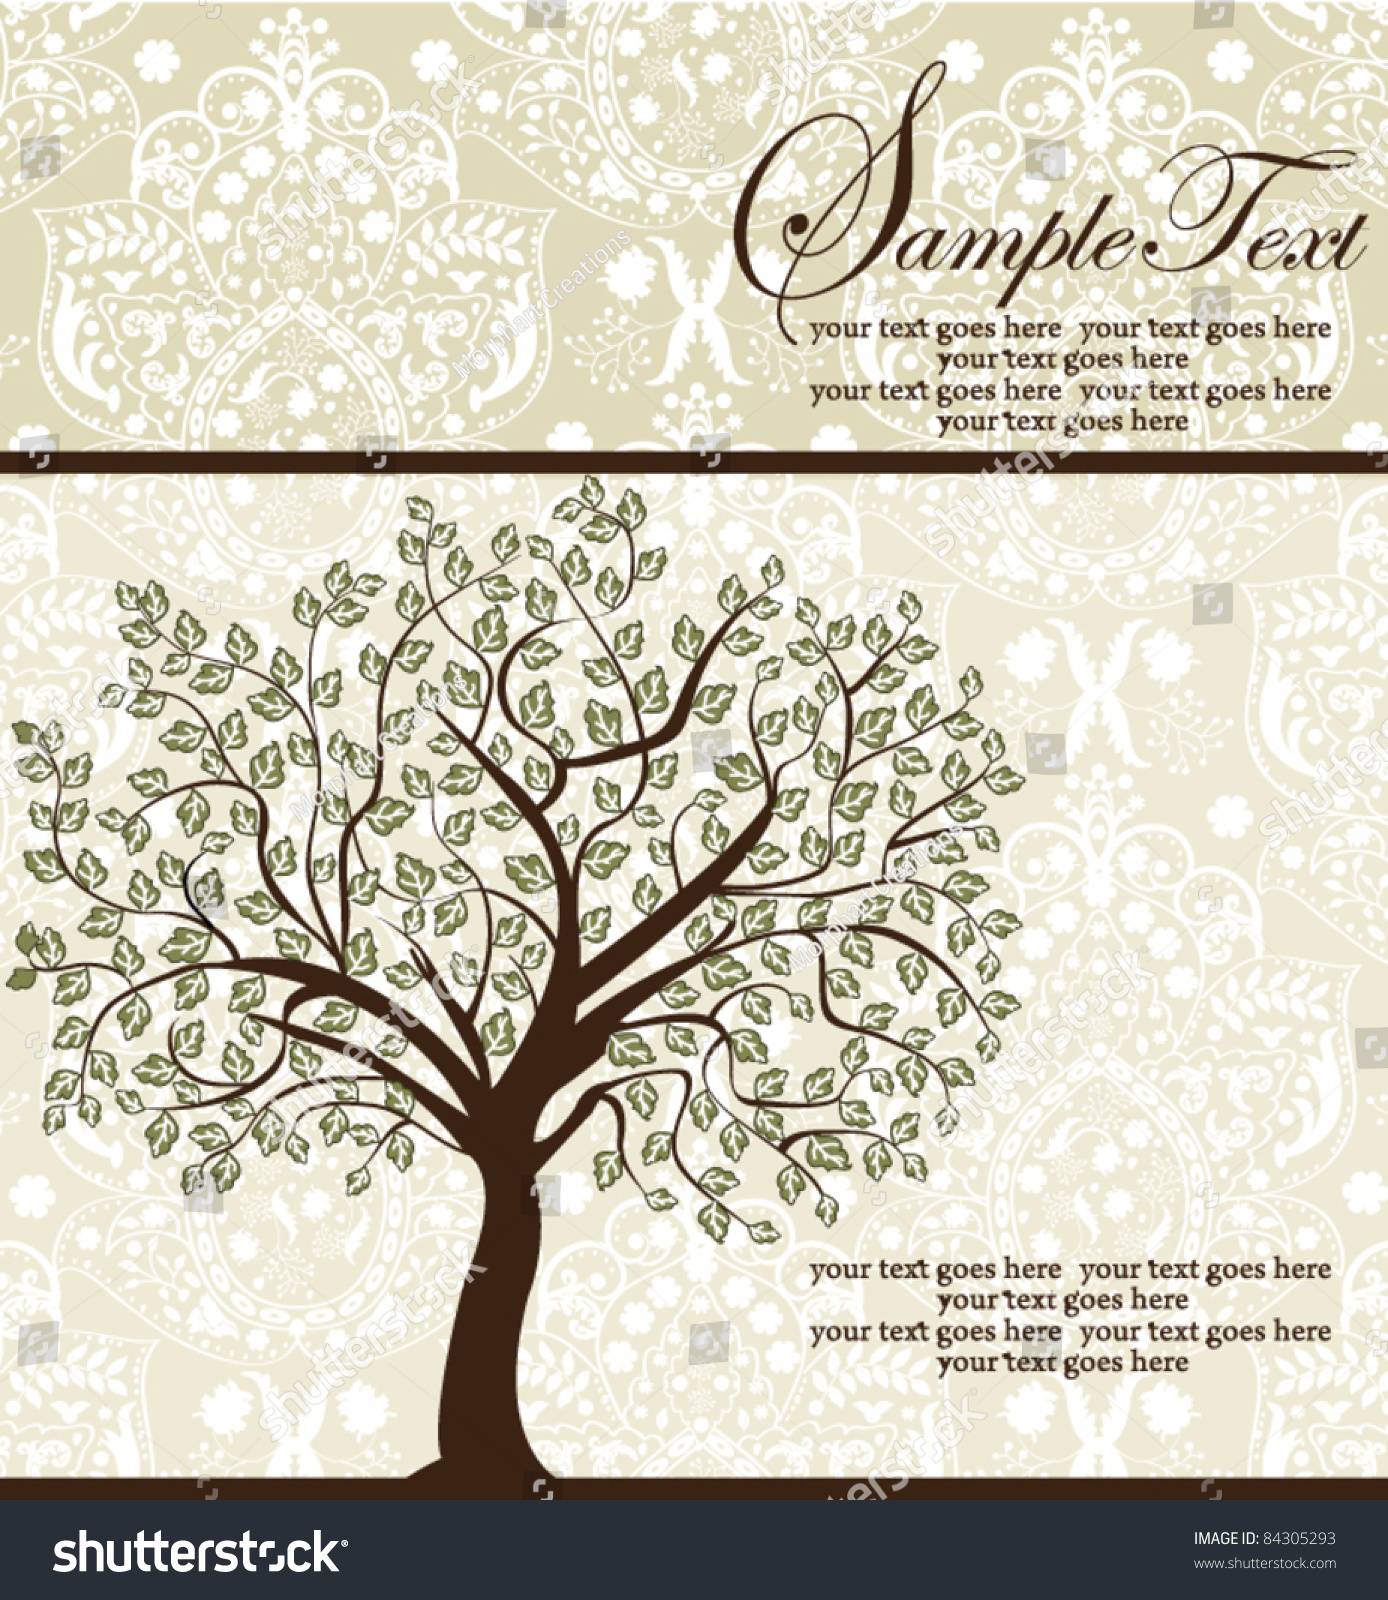 Free Family Reunion Invitations design – Family Gathering Invitation Wording